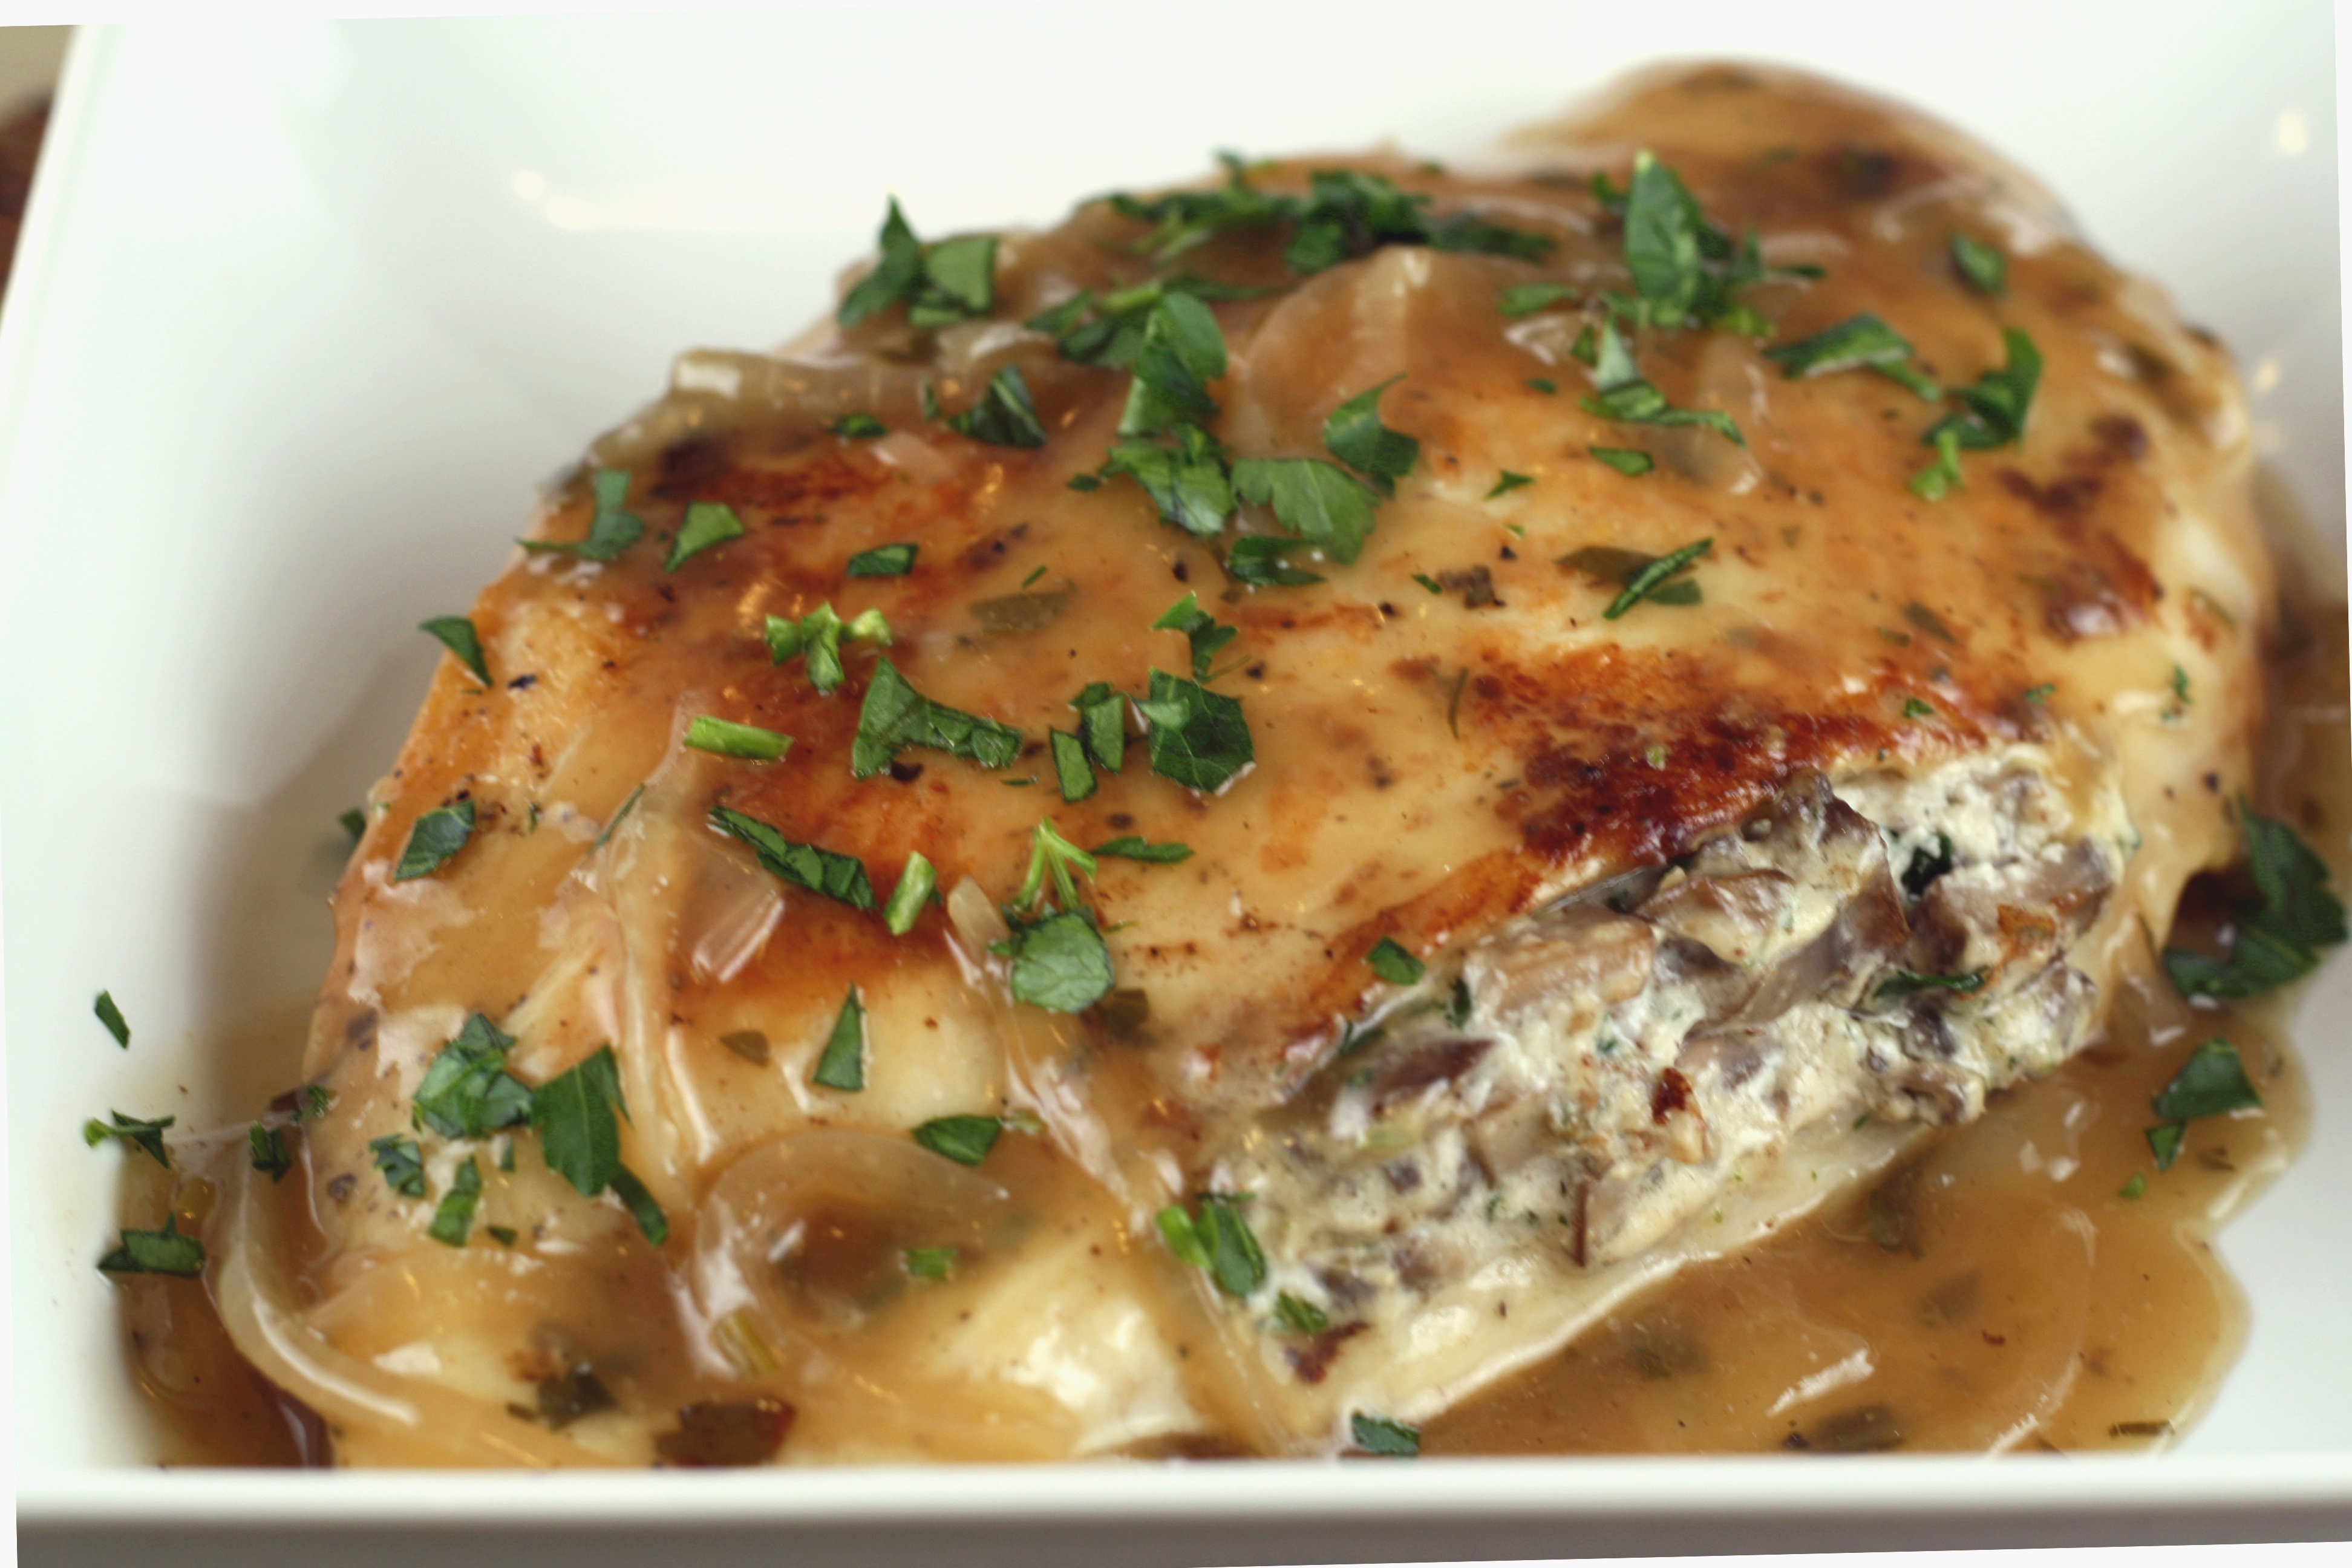 mushroom and goat cheese stuffed chicken with shallot pan sauce